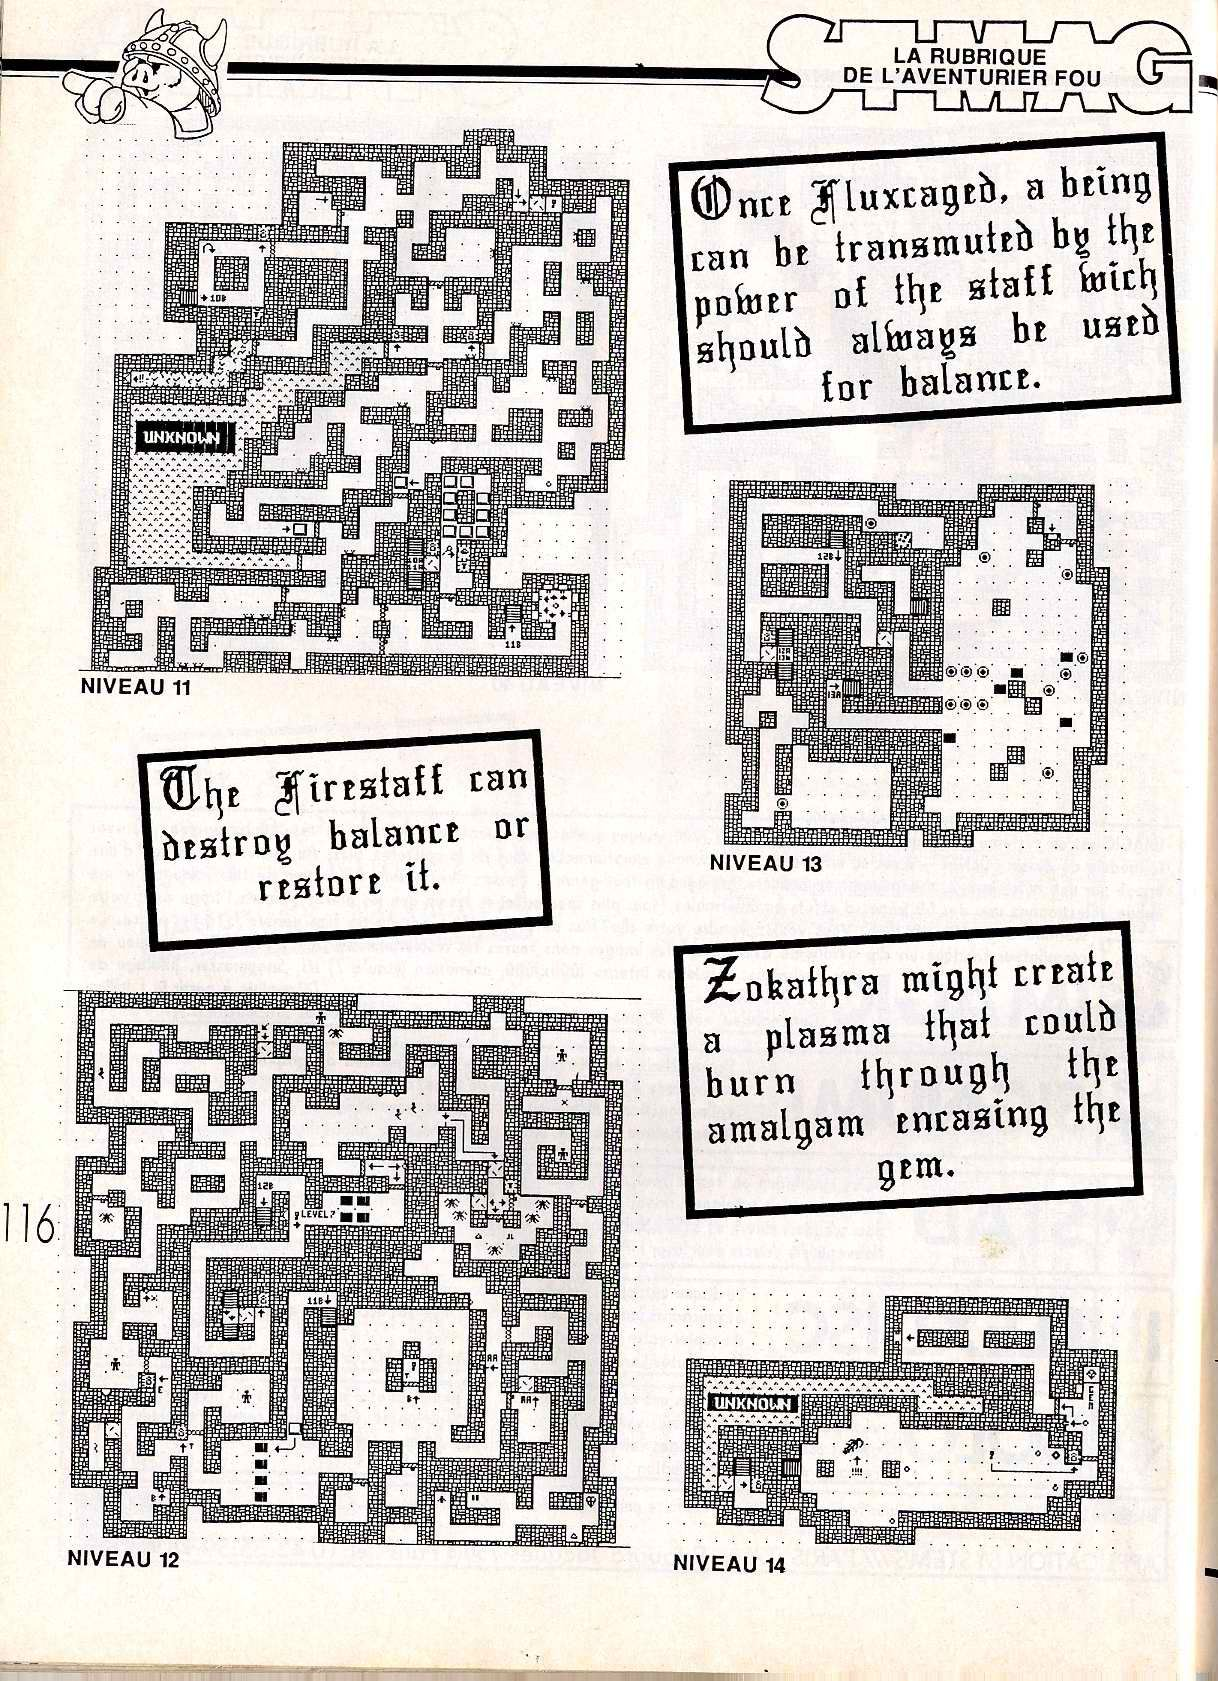 Dungeon Master for Atari ST Guide published in French magazine 'ST Magazine', Issue #20 June 1988, Page 116